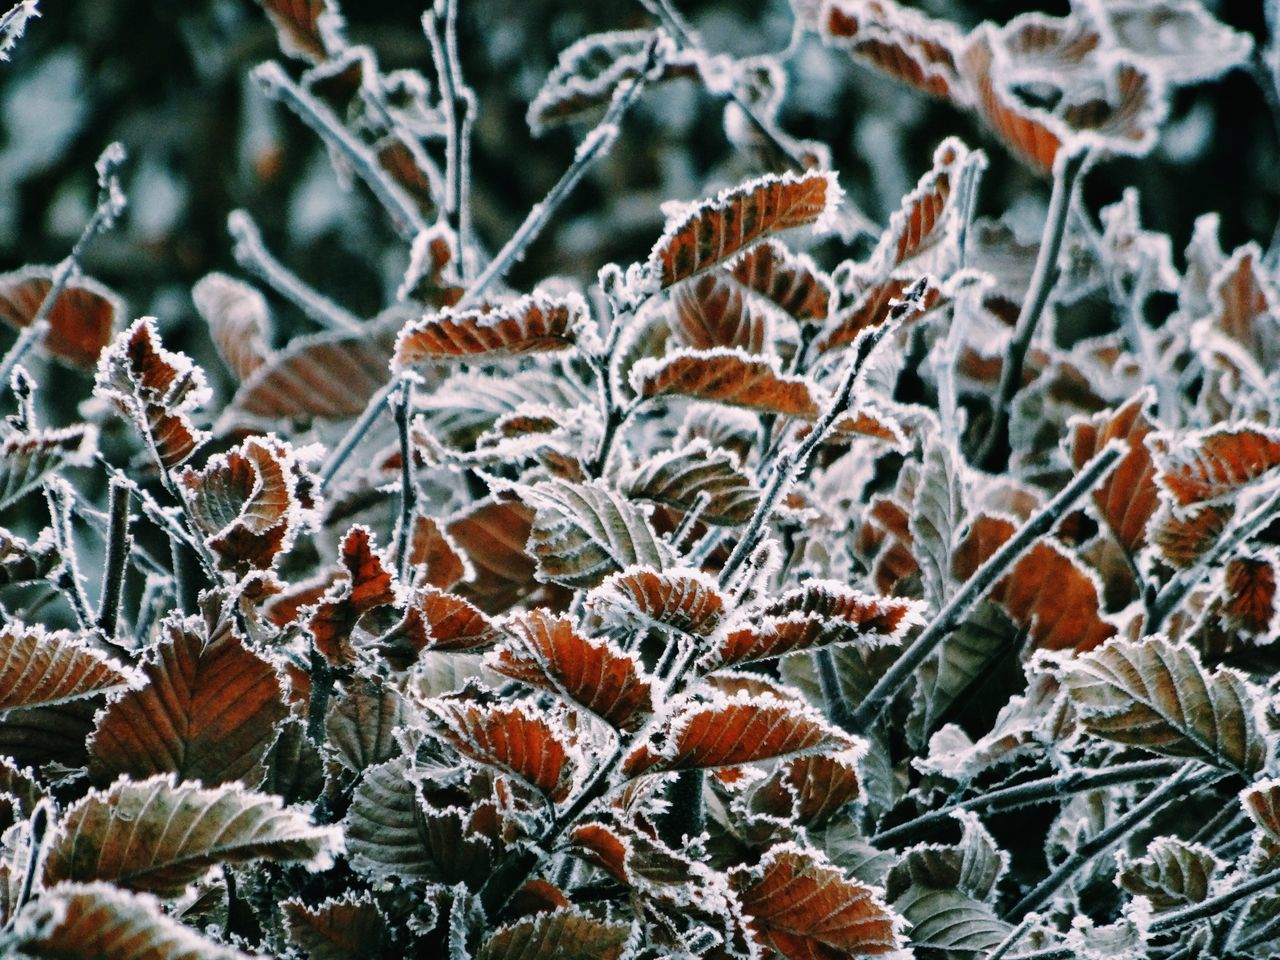 Nature Growth Close-up Plant No People Outdoors Beauty In Nature Day Leaves Winter New Year Snow Frost White Frost Cold Cold Temperature Cold Days Cold Winter ❄⛄